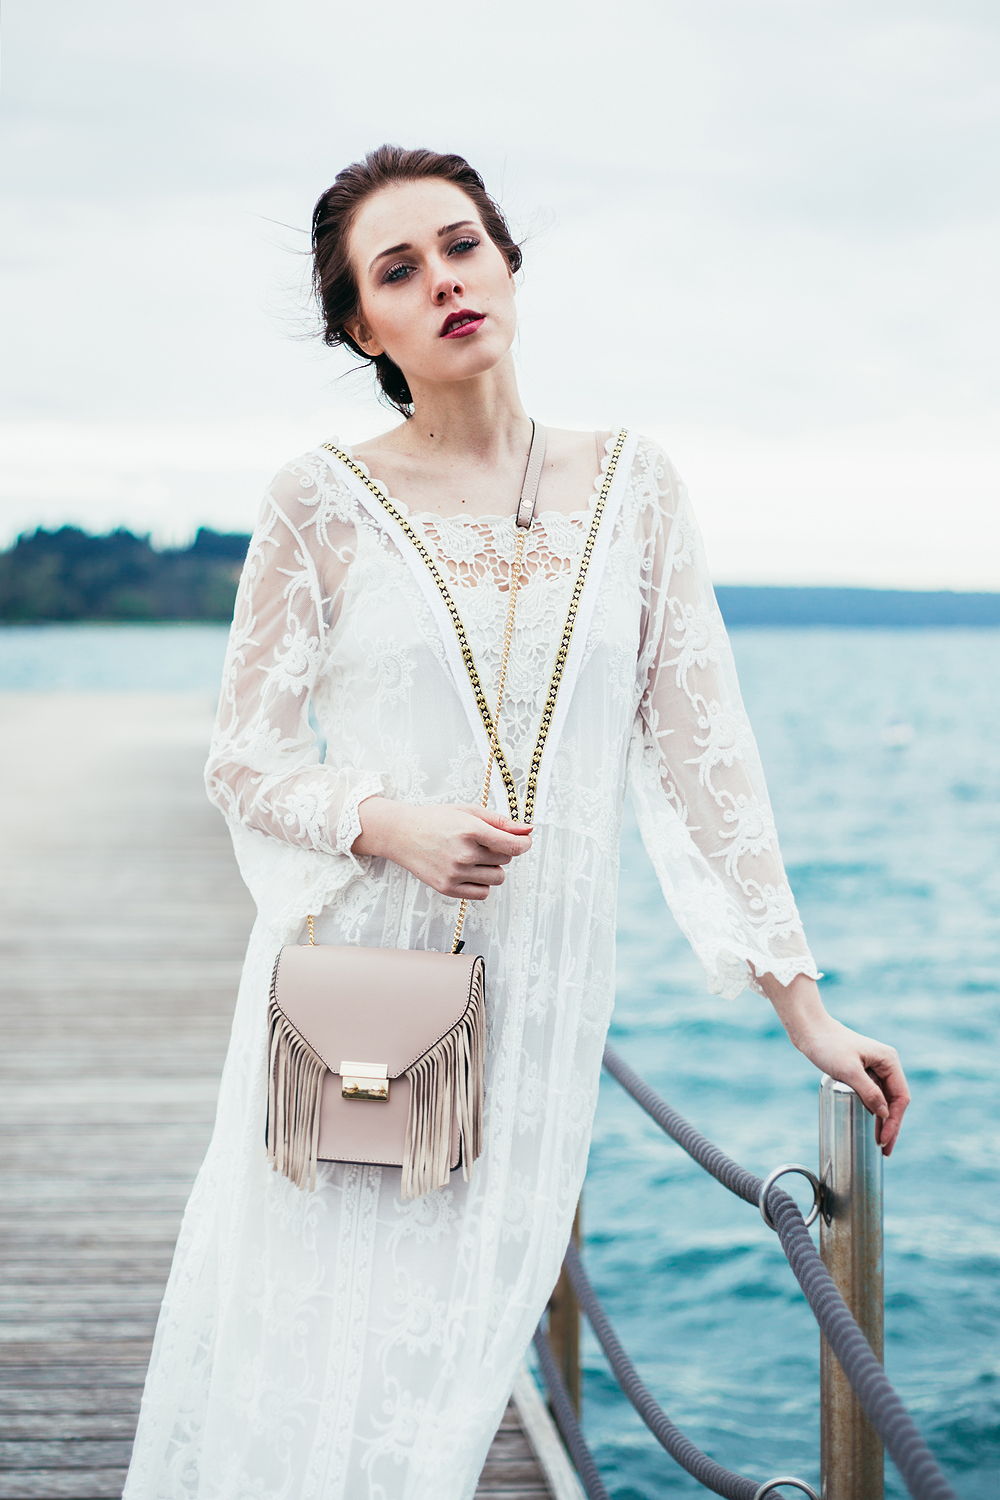 Eva Ahačevčič_Love, Eva_OOTD_FAshion blogger_Terminal 3_WHite dress_Boho_Slovenia_Portorose